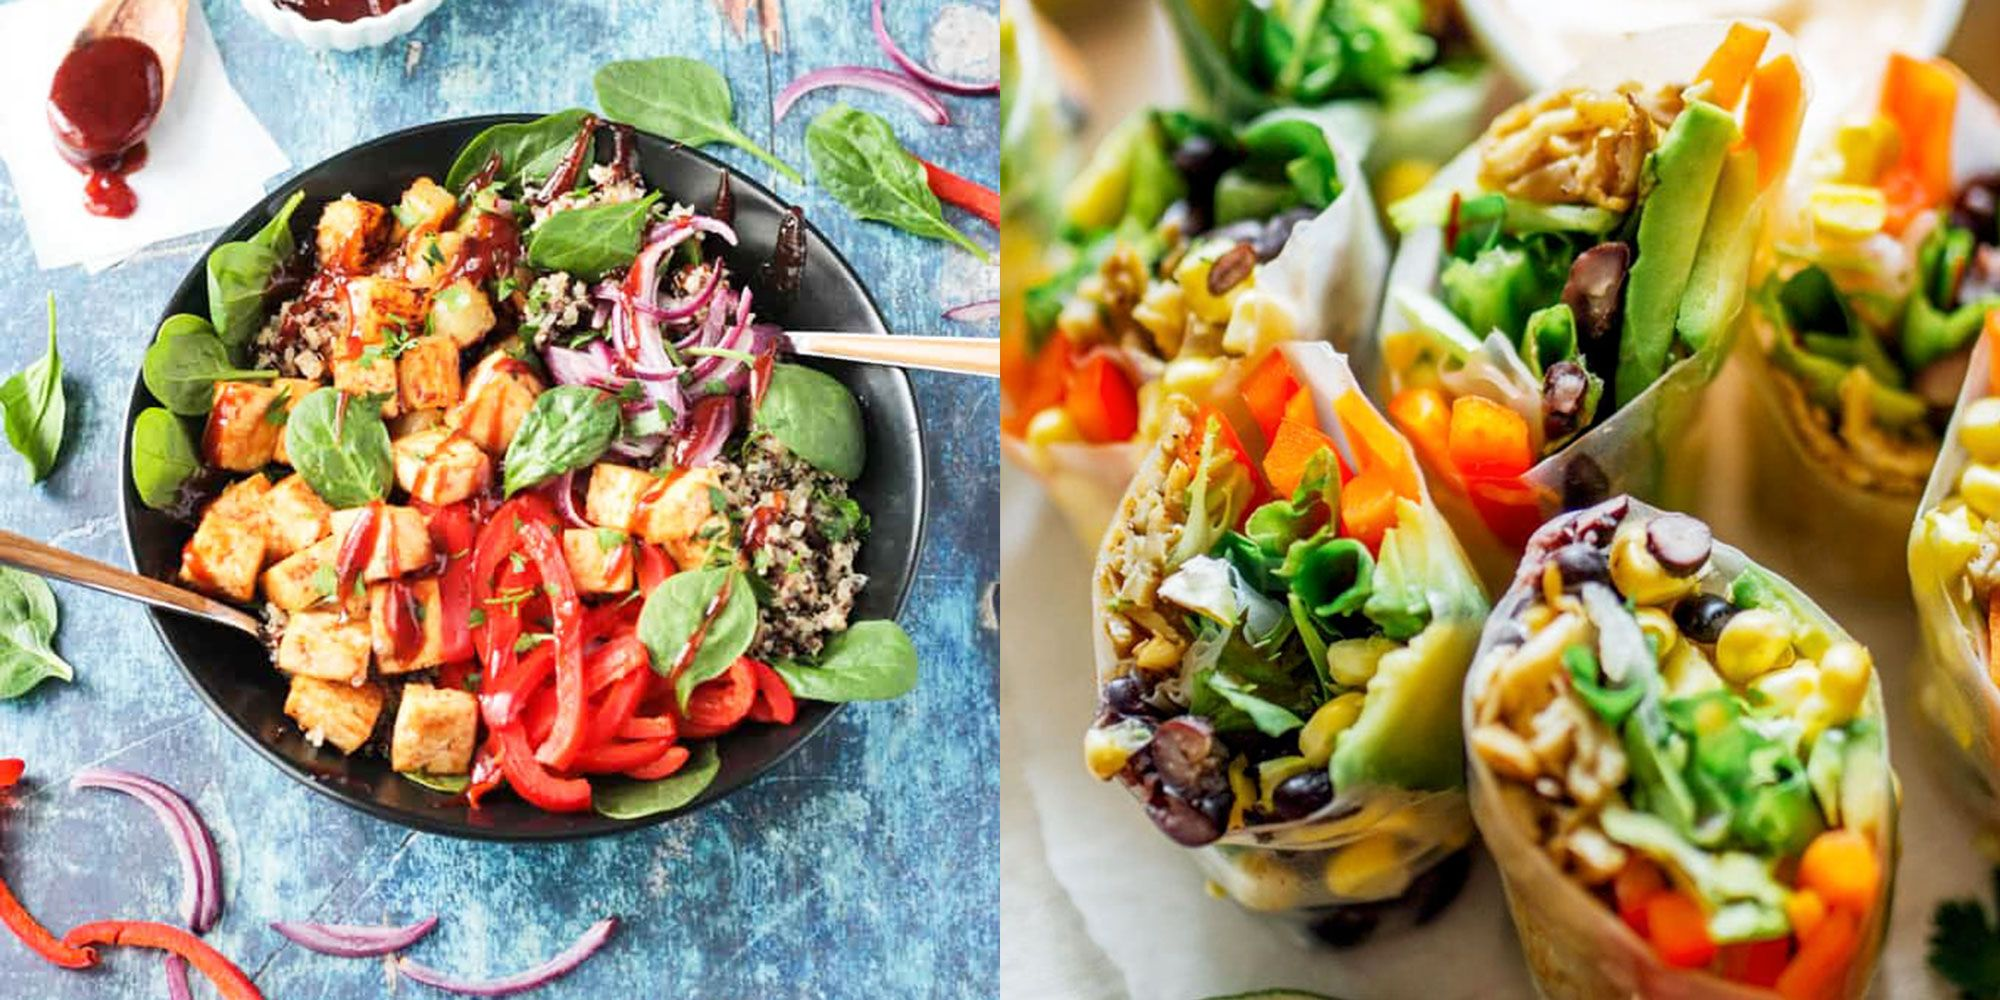 36 Delicious Vegan Dinners You'll Want To Make Over And Over Again